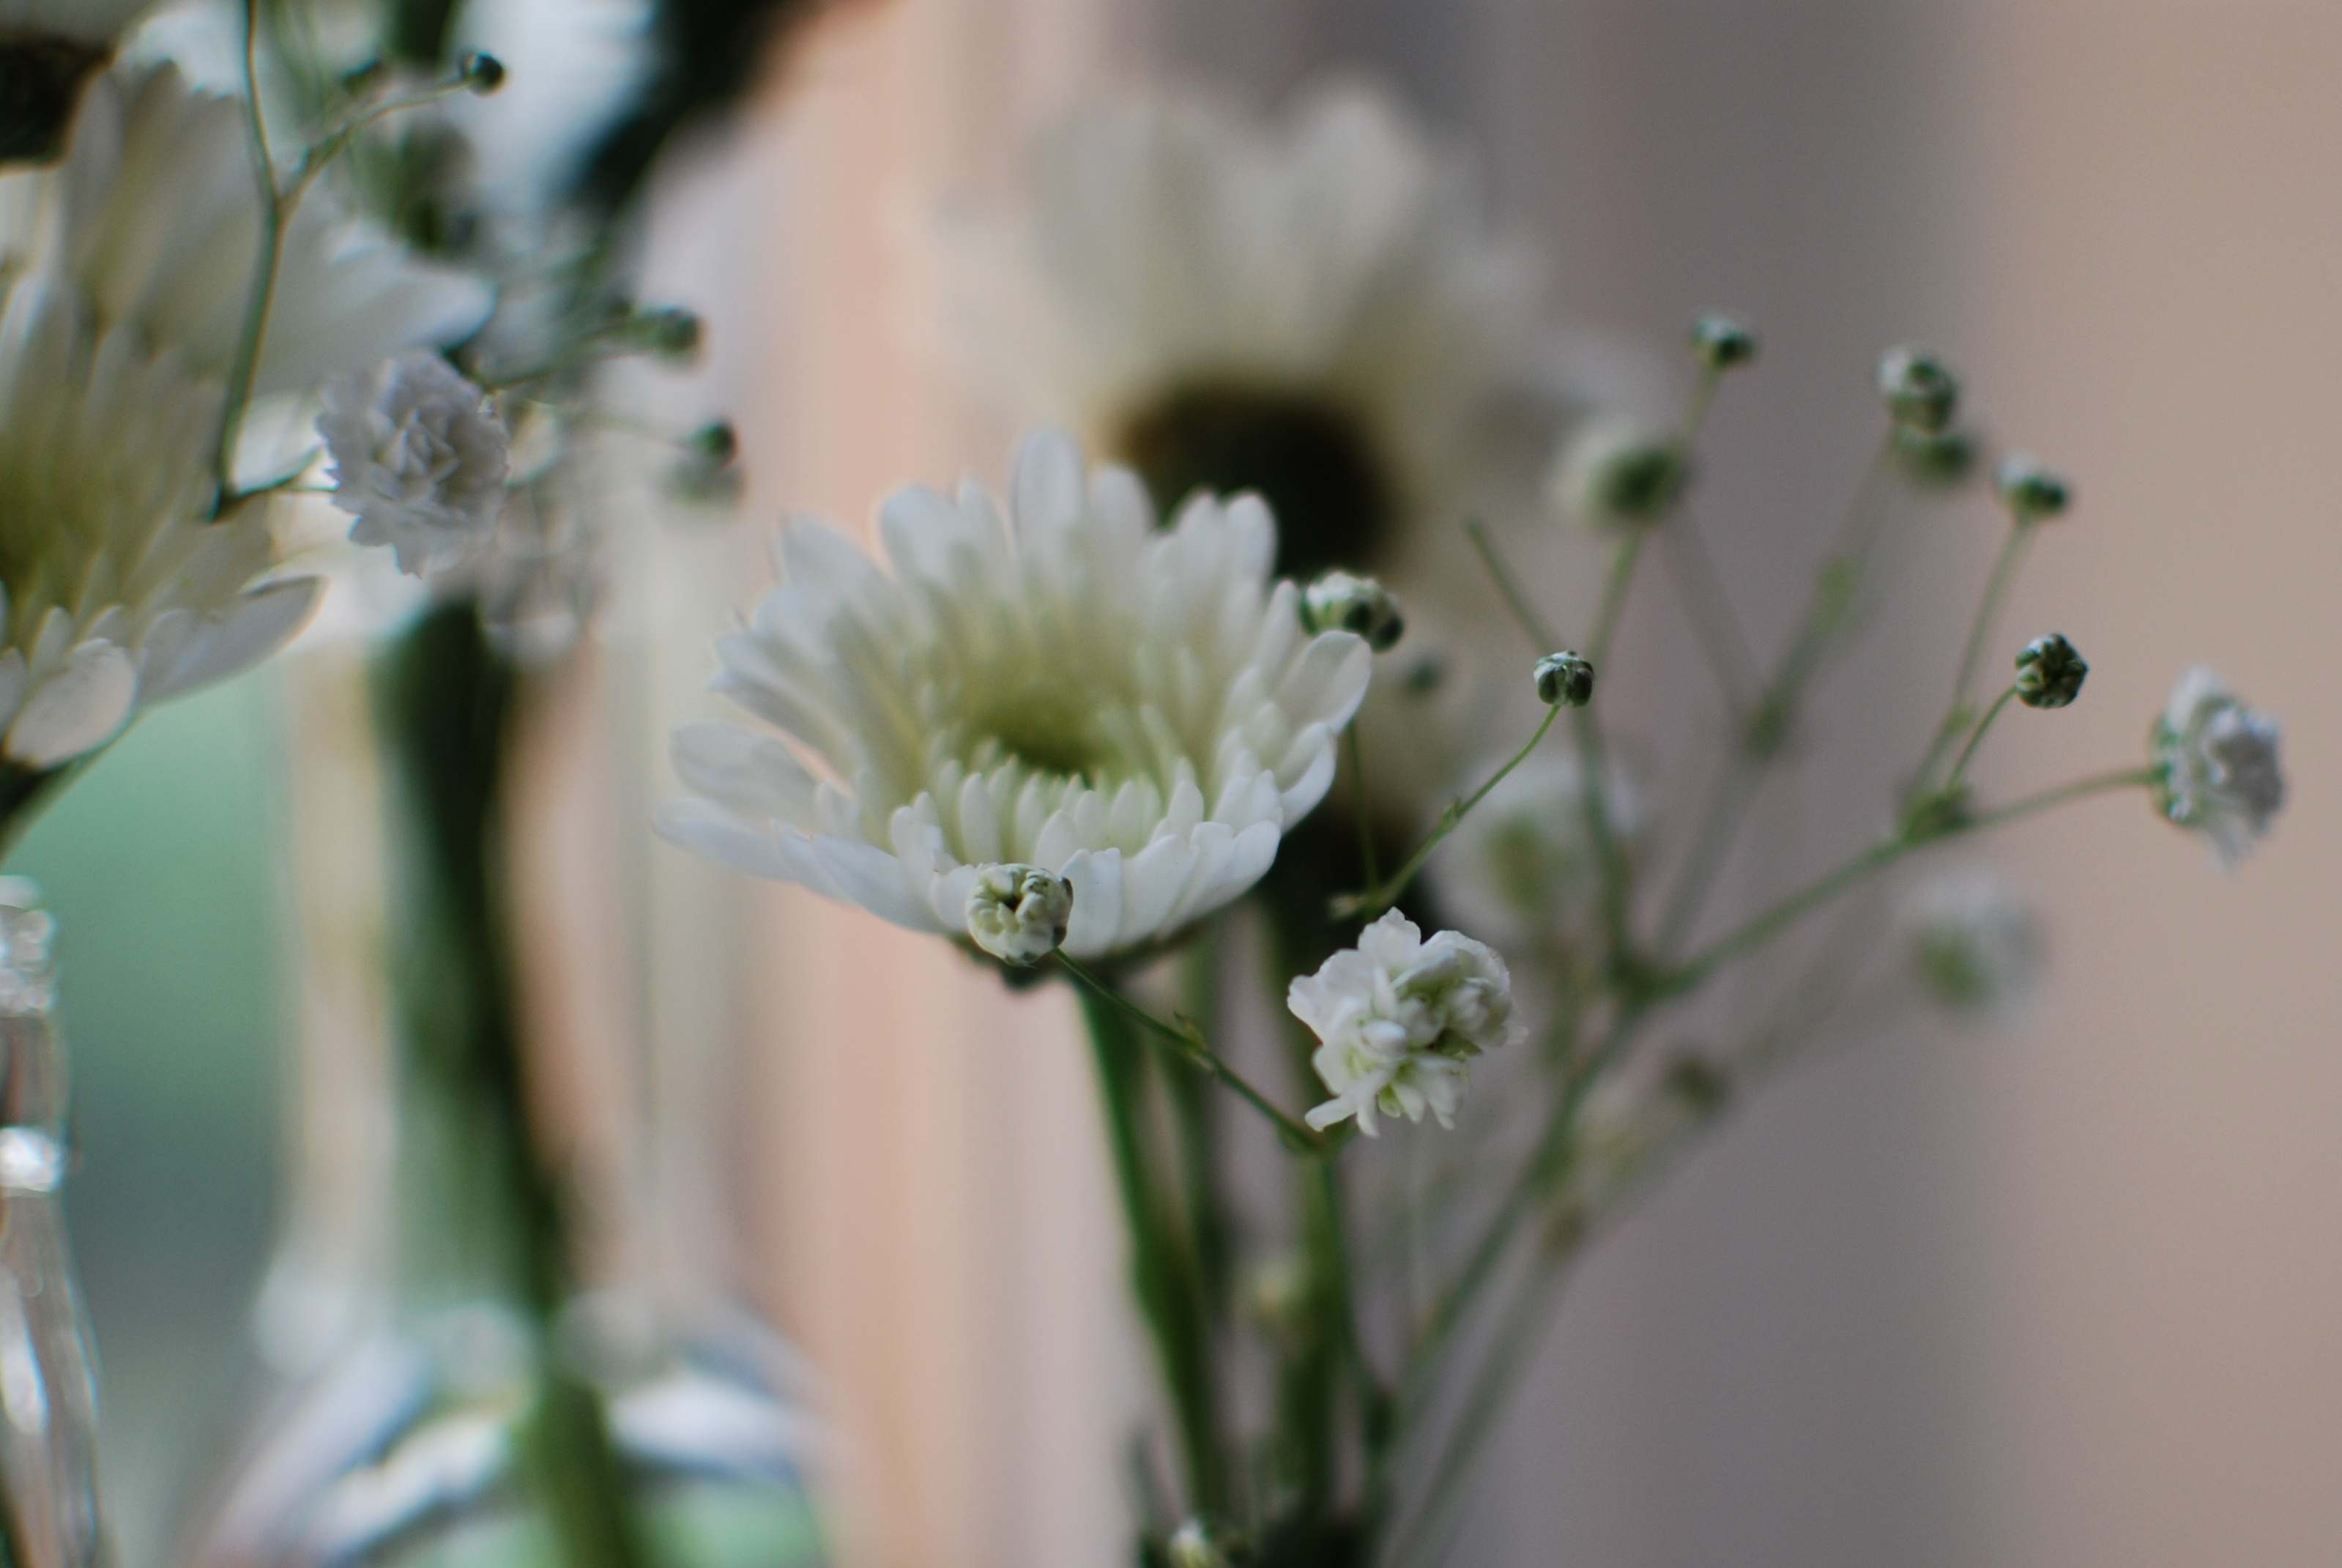 chambray and curls gyspsphilia baby's breath and crysanthemums